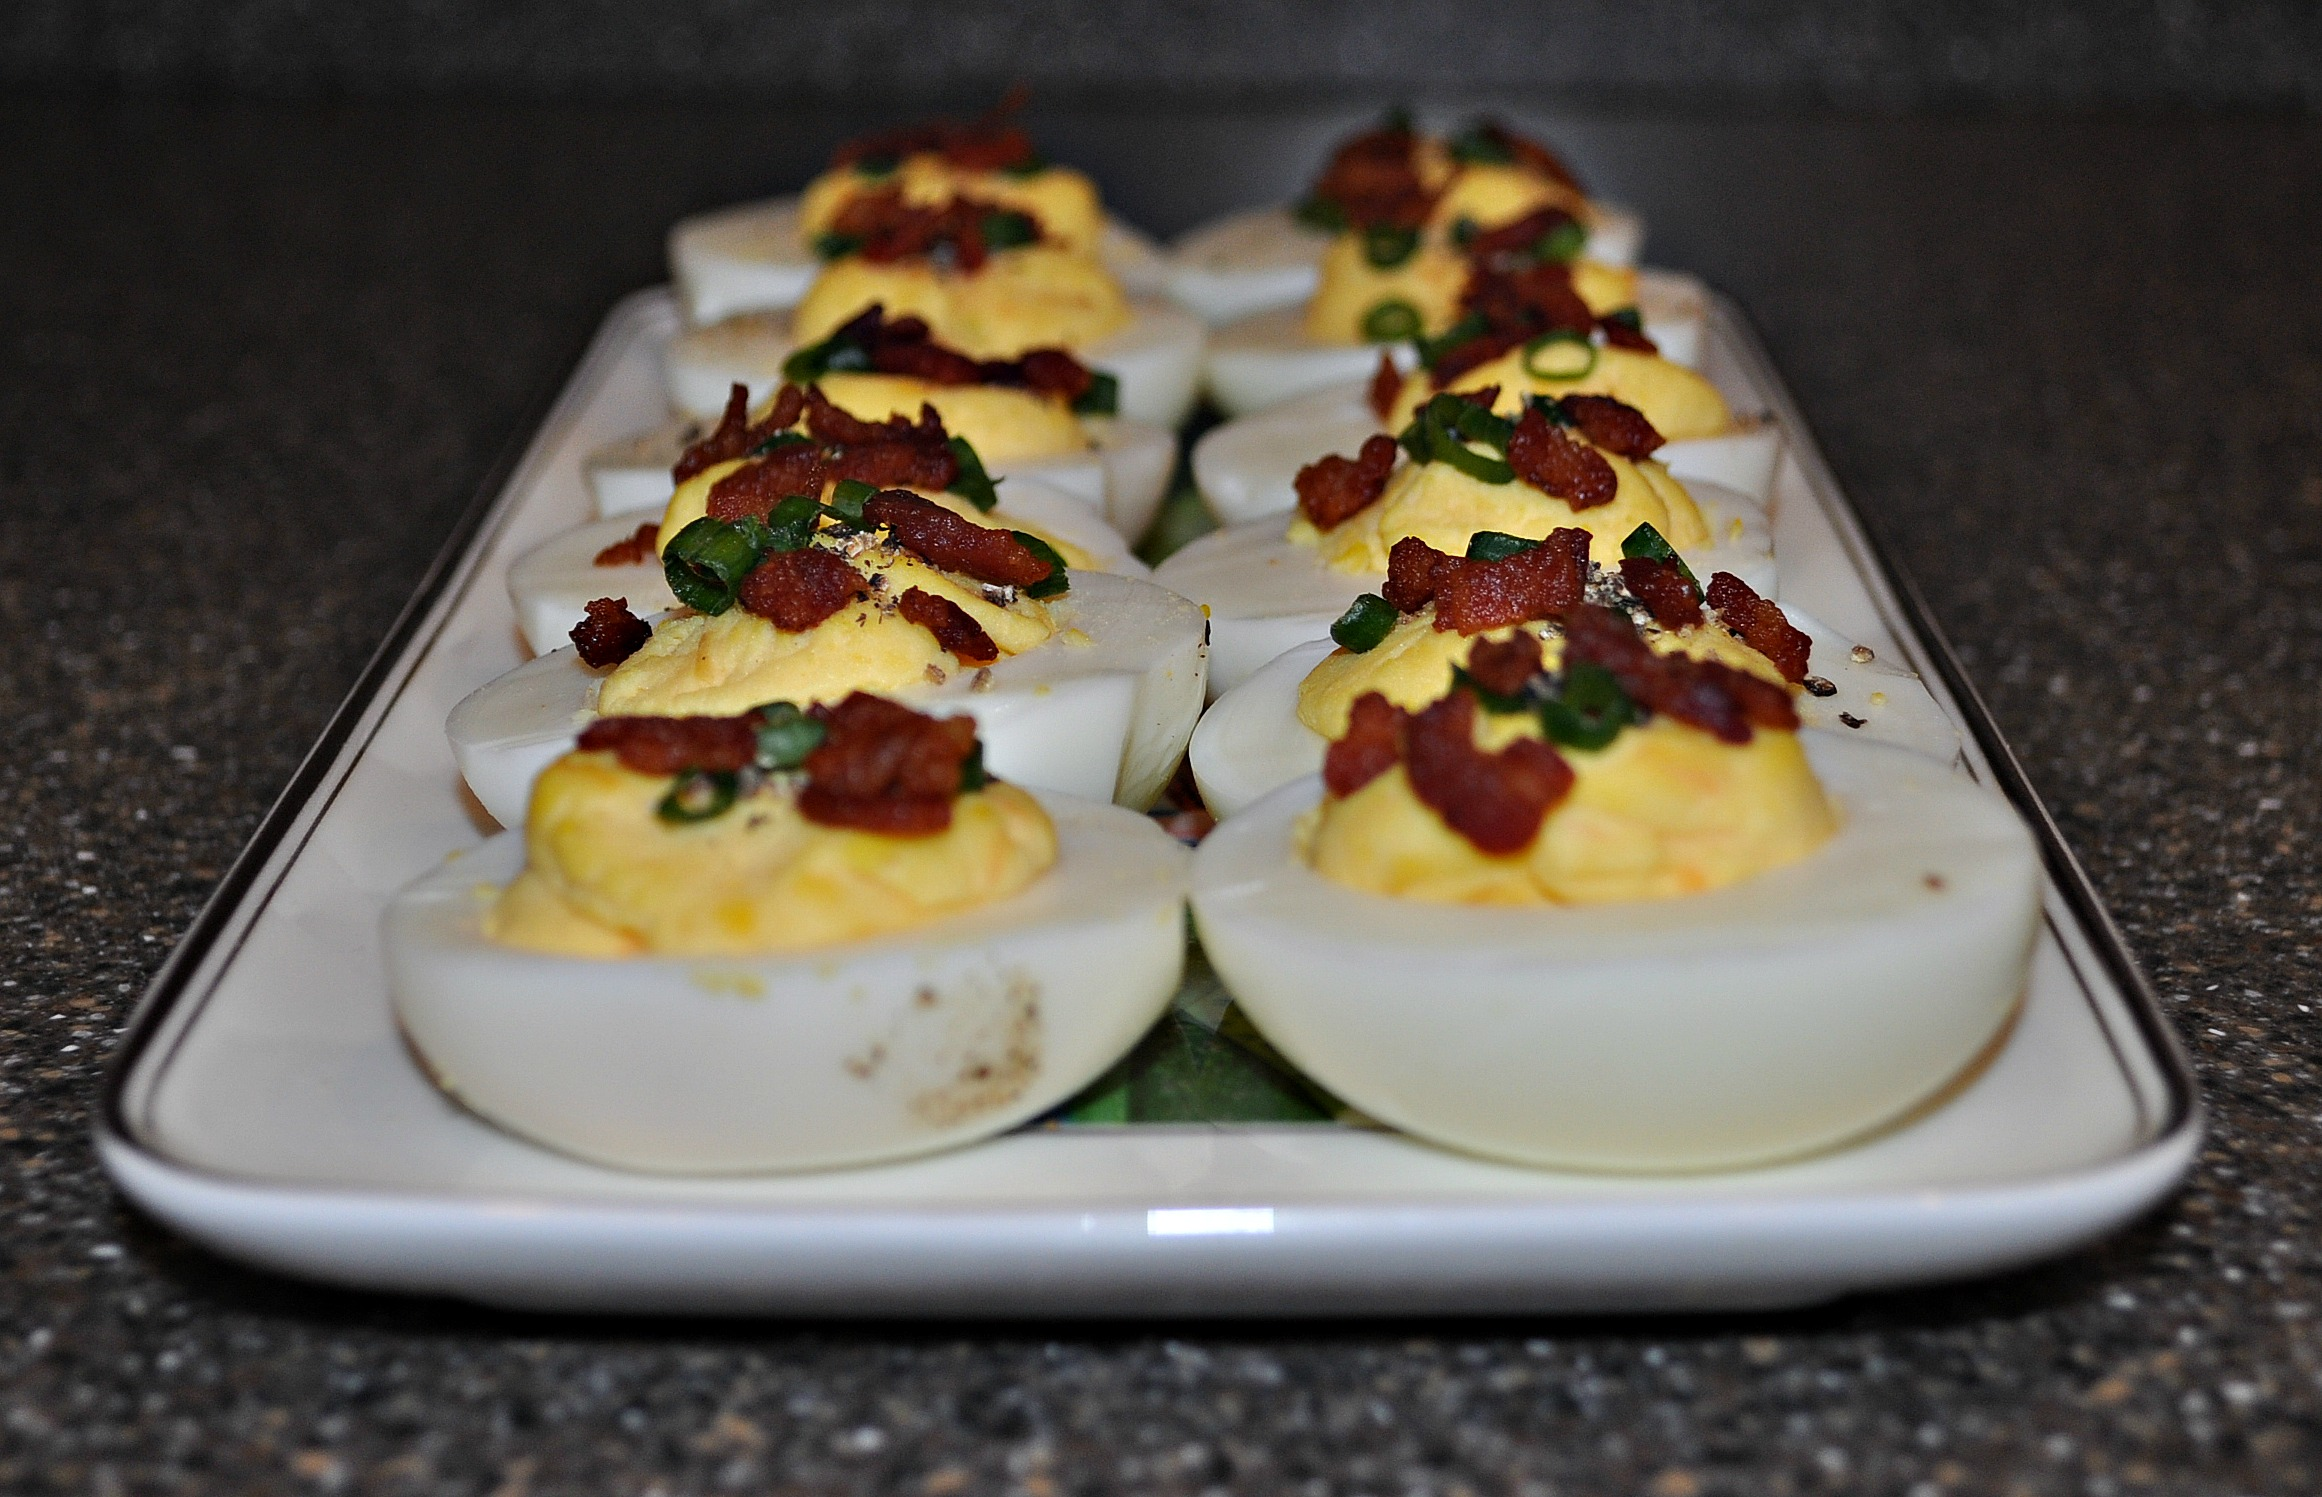 Bacon Cheddar Deviled Eggs from D'Lish Deviled Eggs by Kathy Casey